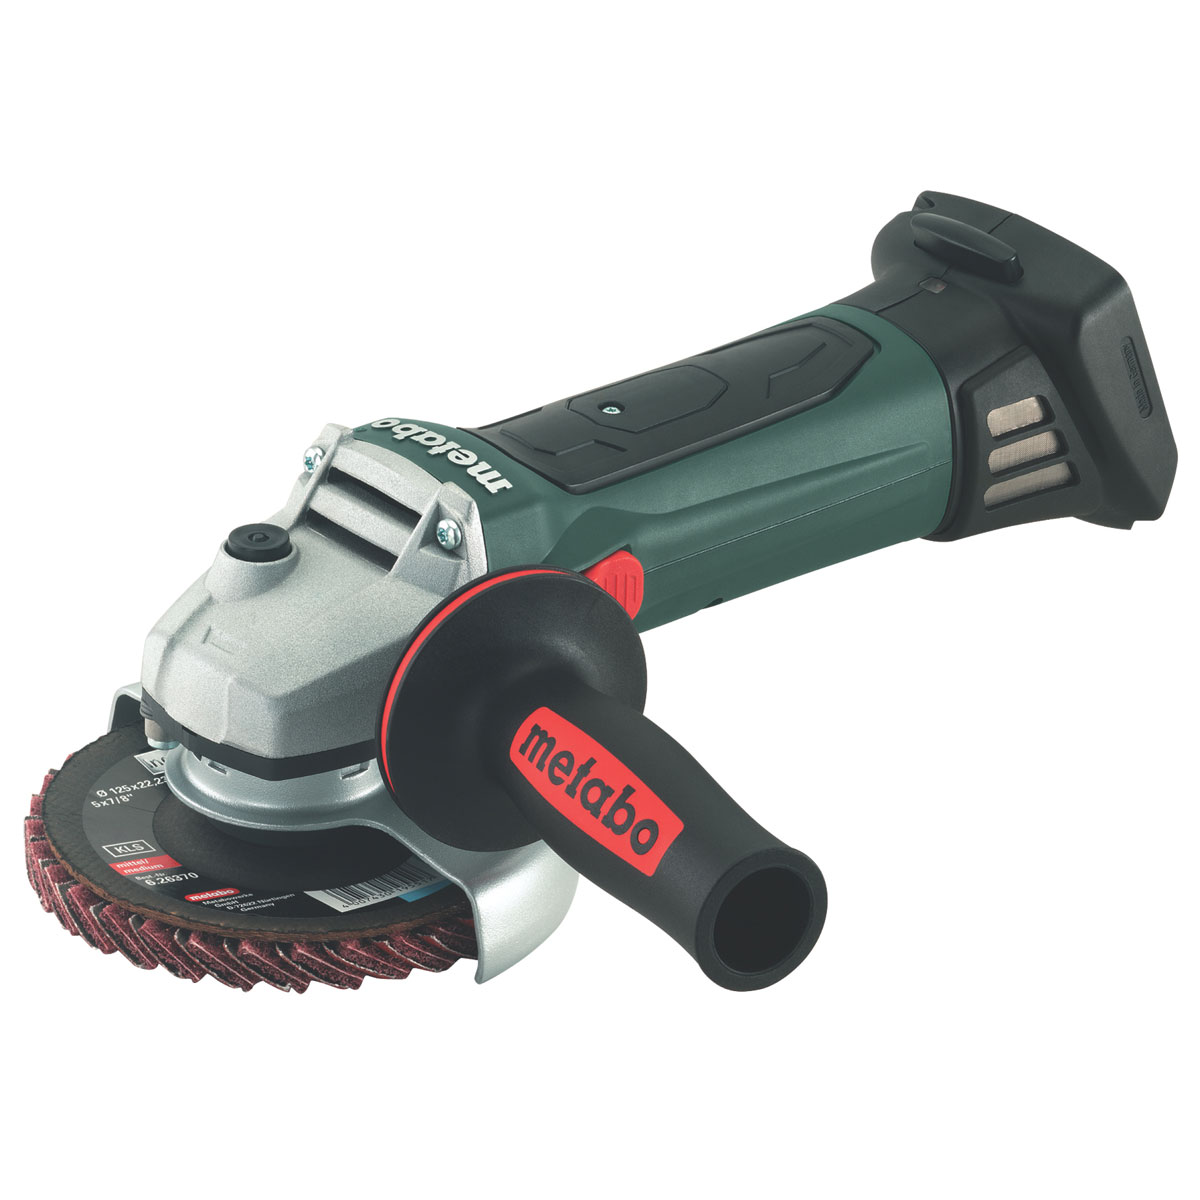 "METABO CORDLESS ANGLE GRINDER W 18 LTX 4 1/2"" (115MM) - BODY ONLY"